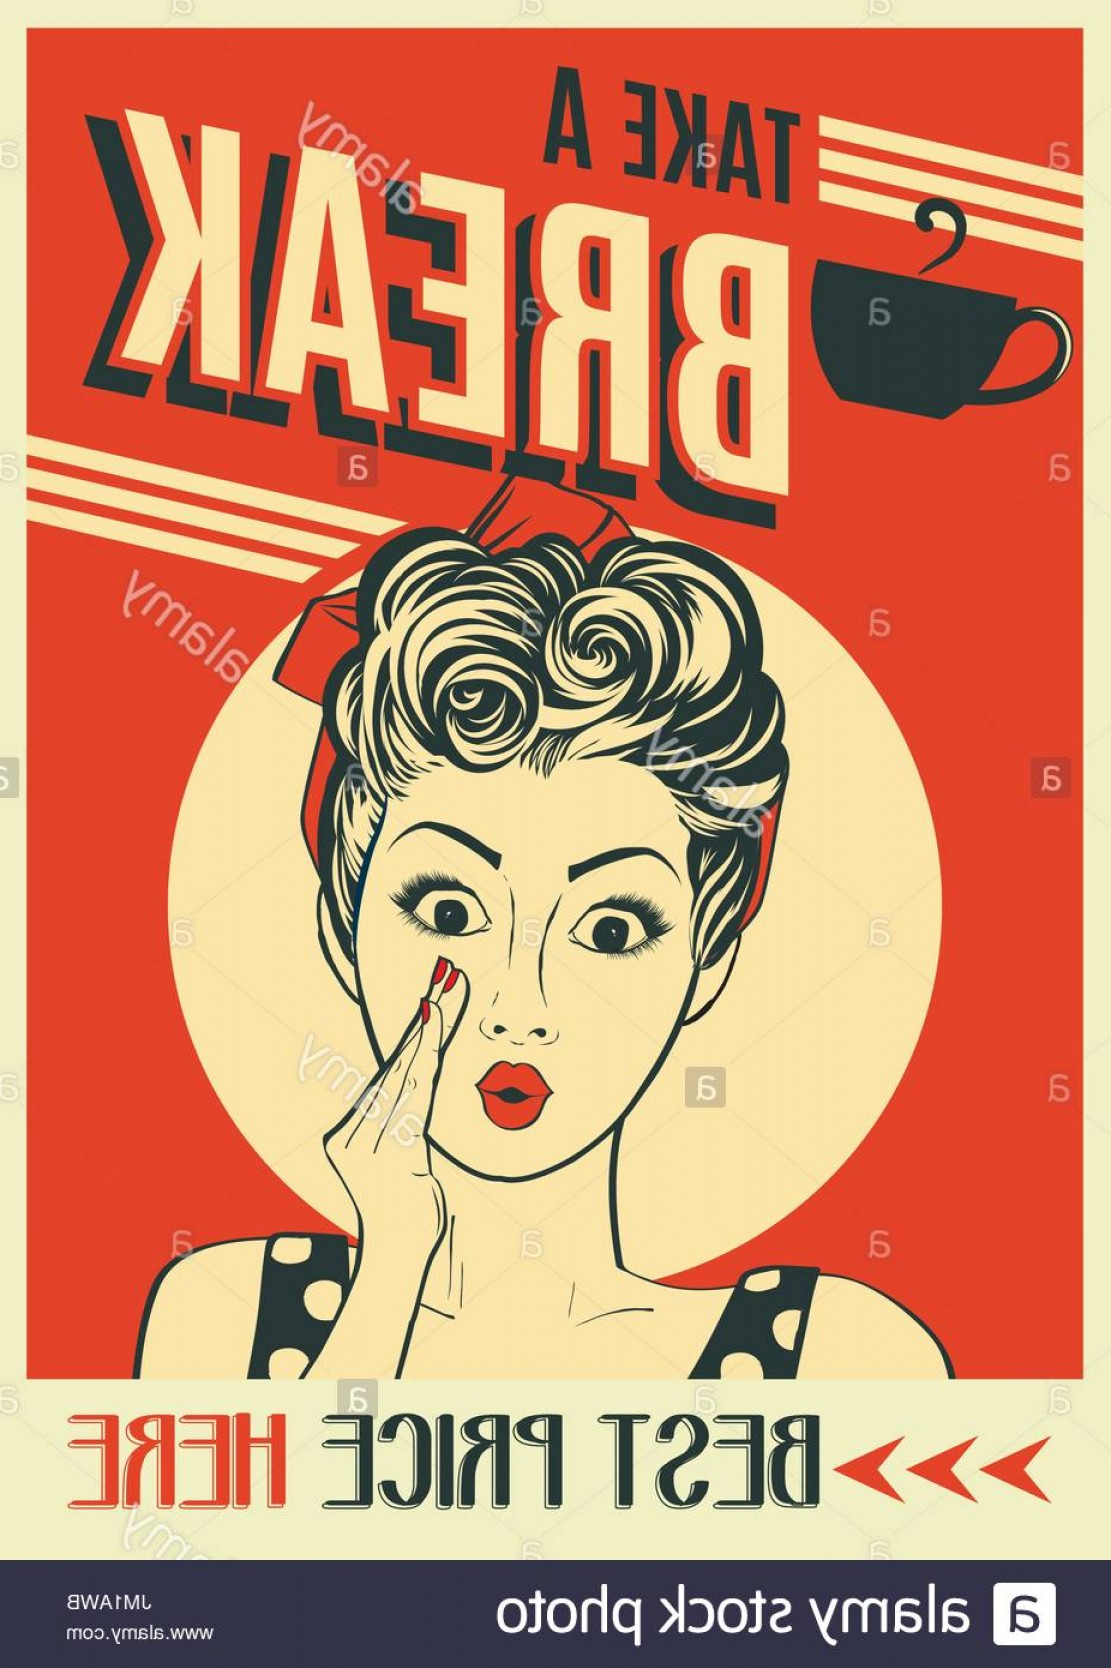 Retro Poster Vector: Advertising Coffee Retro Poster With Pop Art Woman Vector Format Image